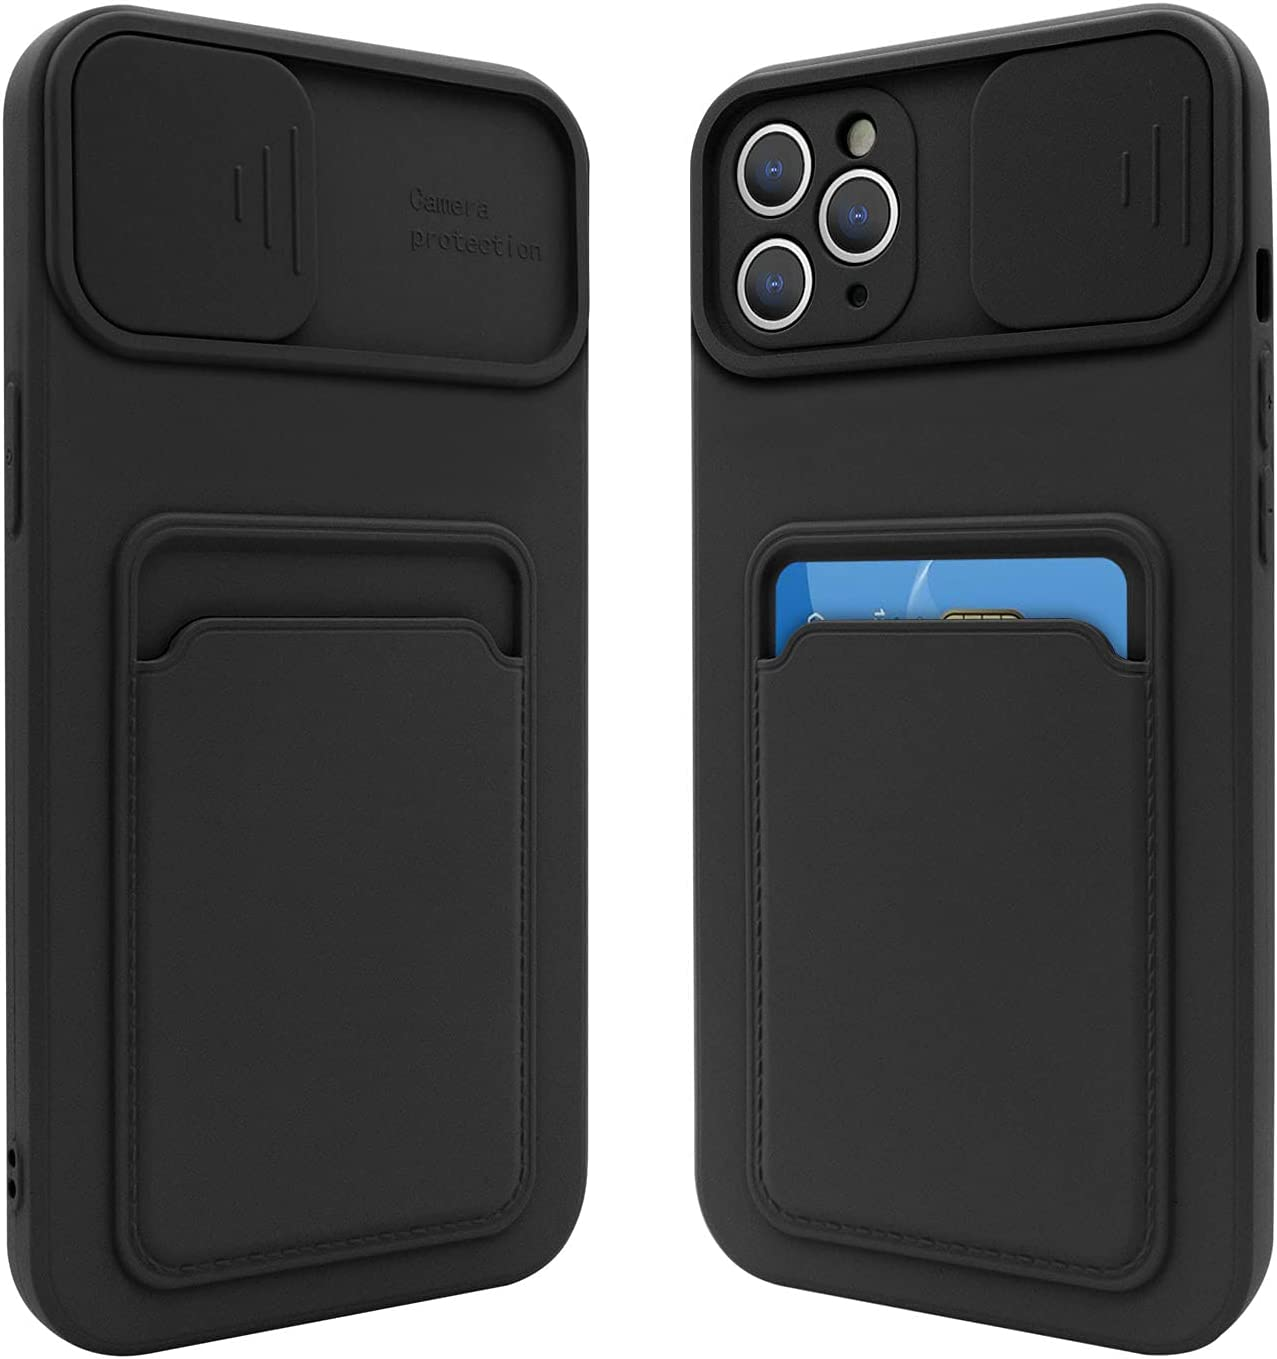 Fsoole iPhone 12 Pro Max Silicone Card Case with Camera Lens Protector, Credit Card Holder Sleeve Shockproof Cover for 6.7 Inch iPhone 12 Pro Max (Black)